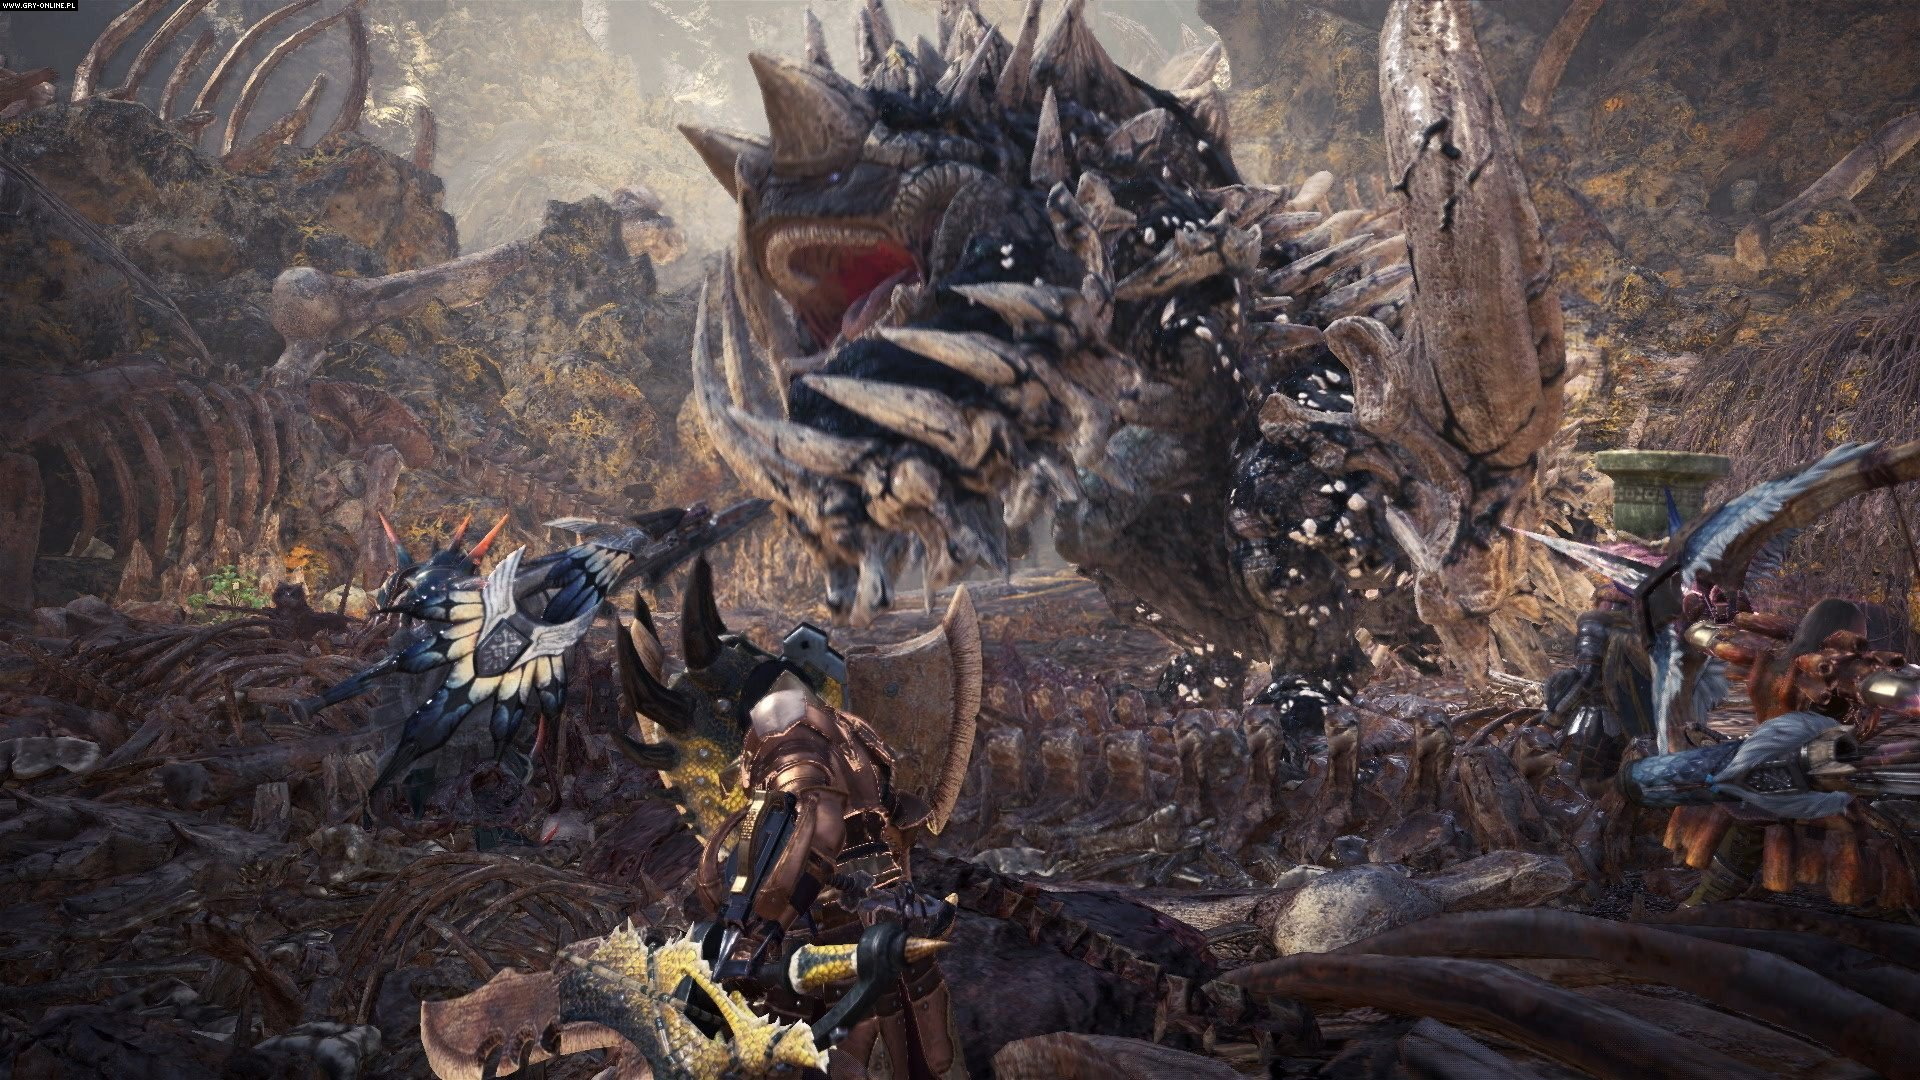 Monster Hunter World PC, PS4, XONE Games Image 7/35, Capcom